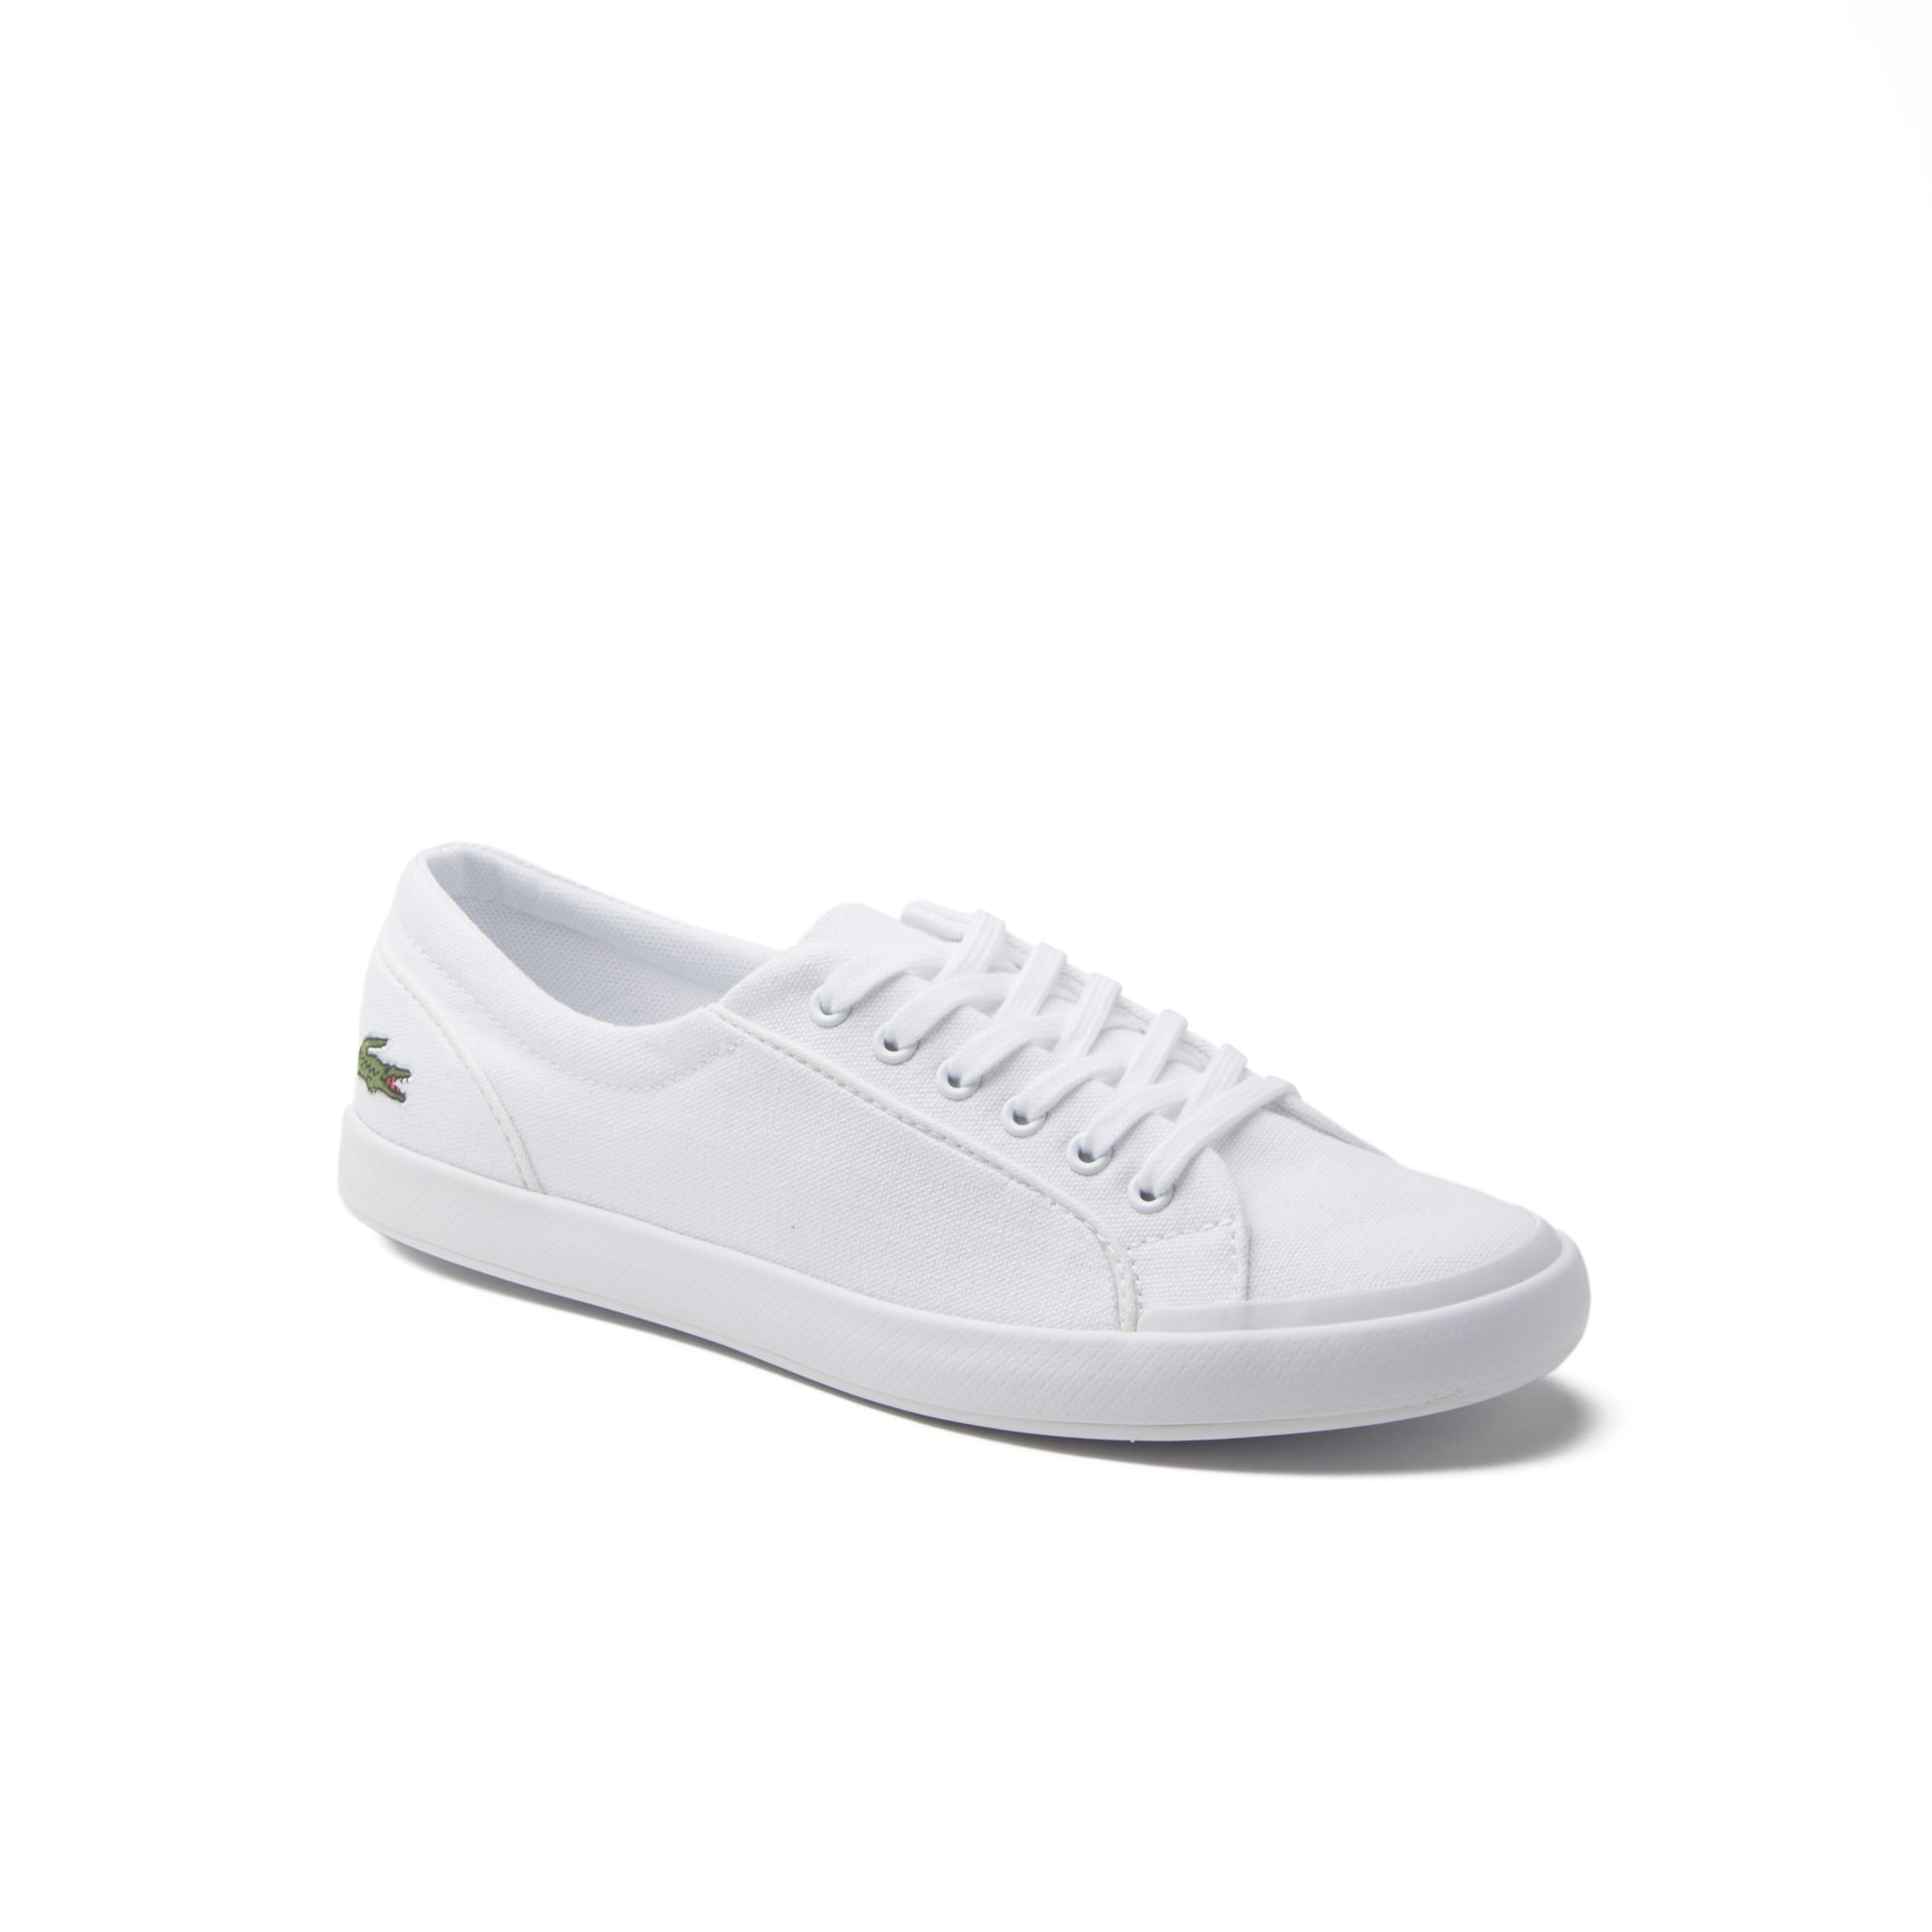 Lancelle BL Damessneakers van Canvas